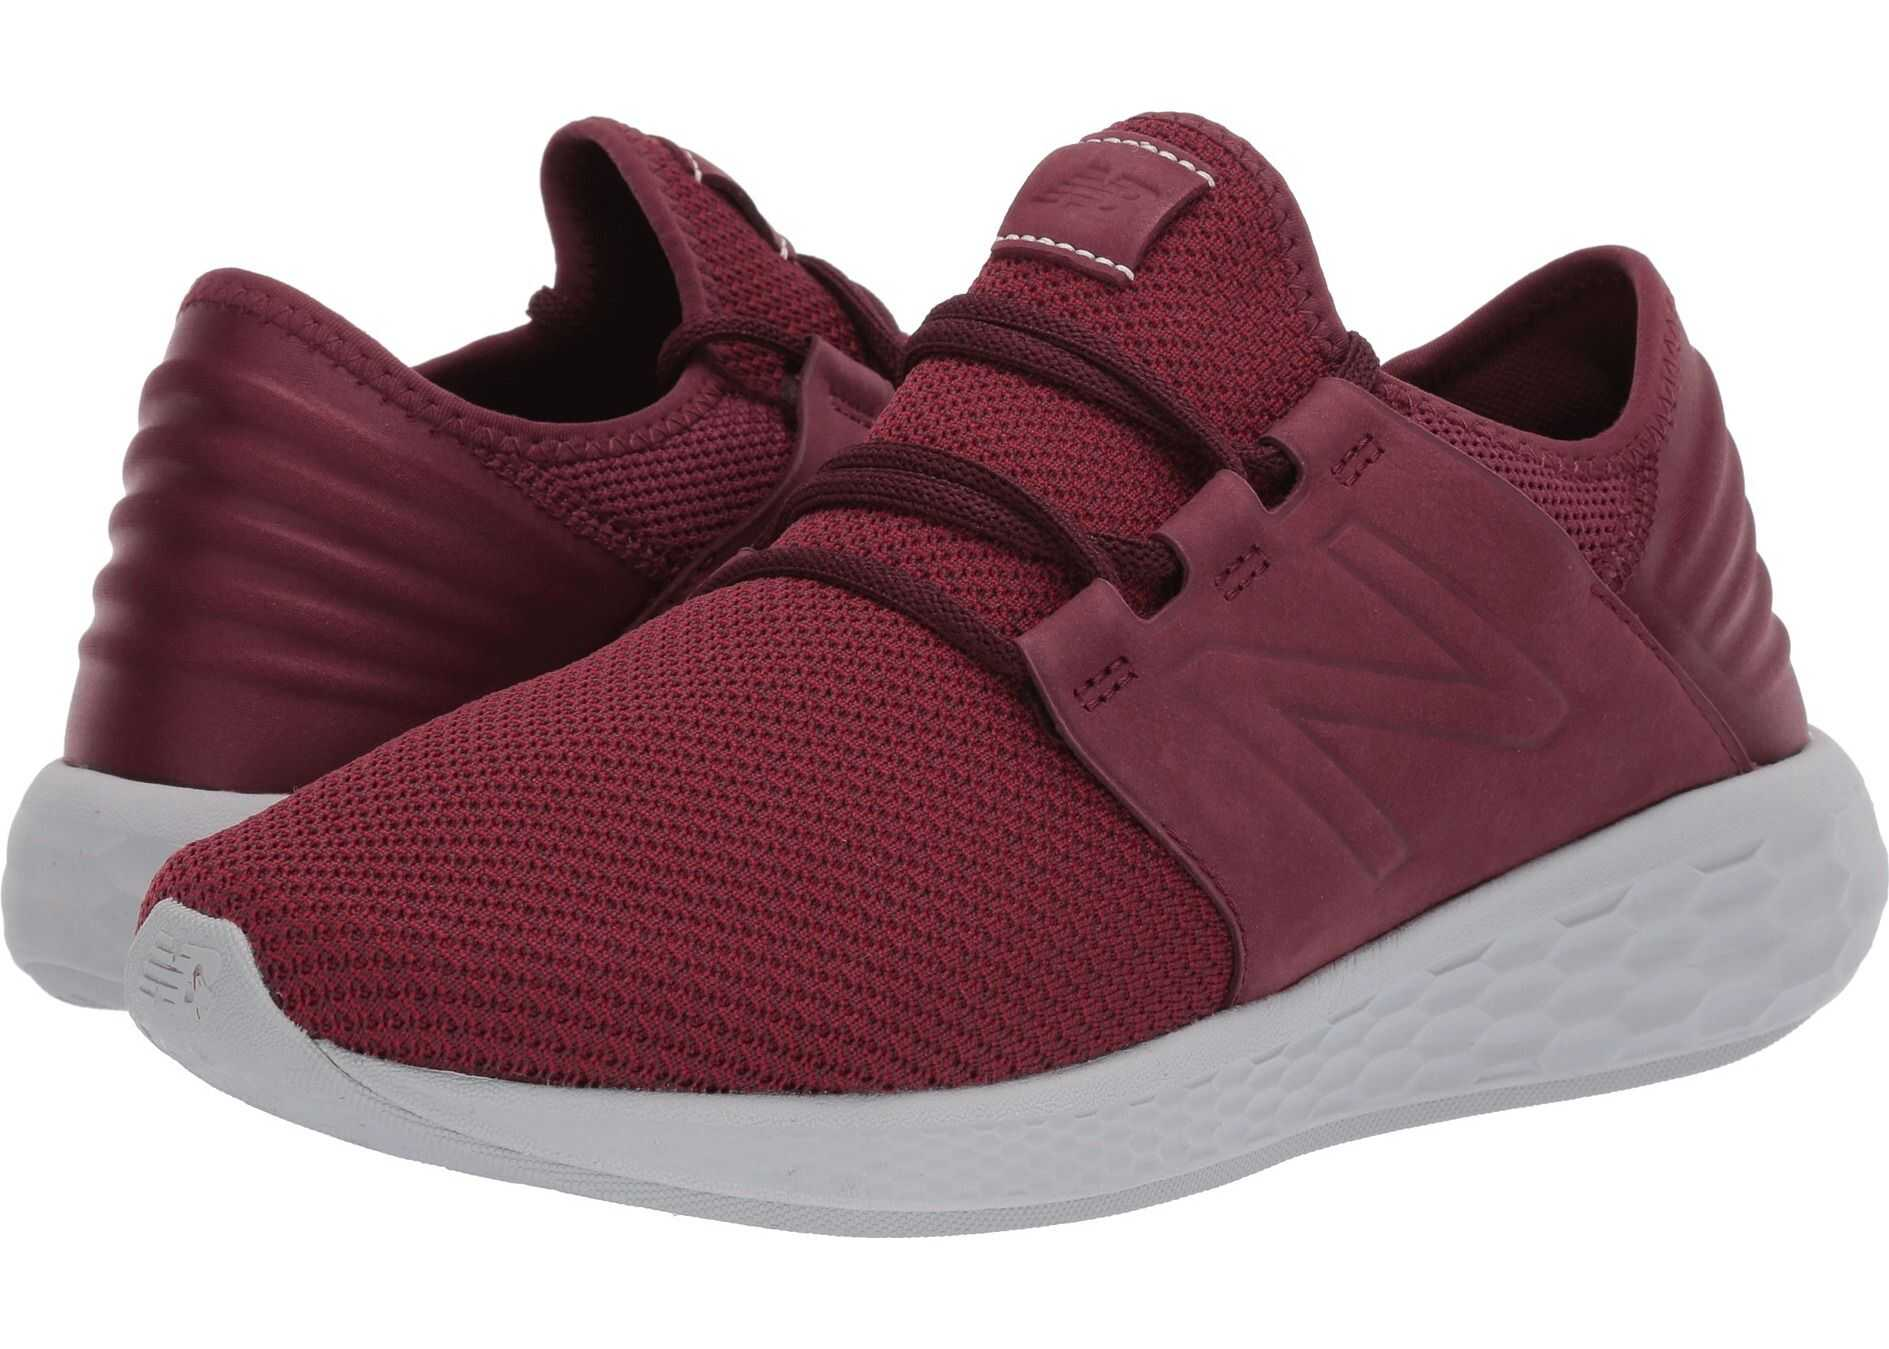 New Balance Fresh Foam Cruz v2 Nubuck NB Burgundy/NB Scarlet